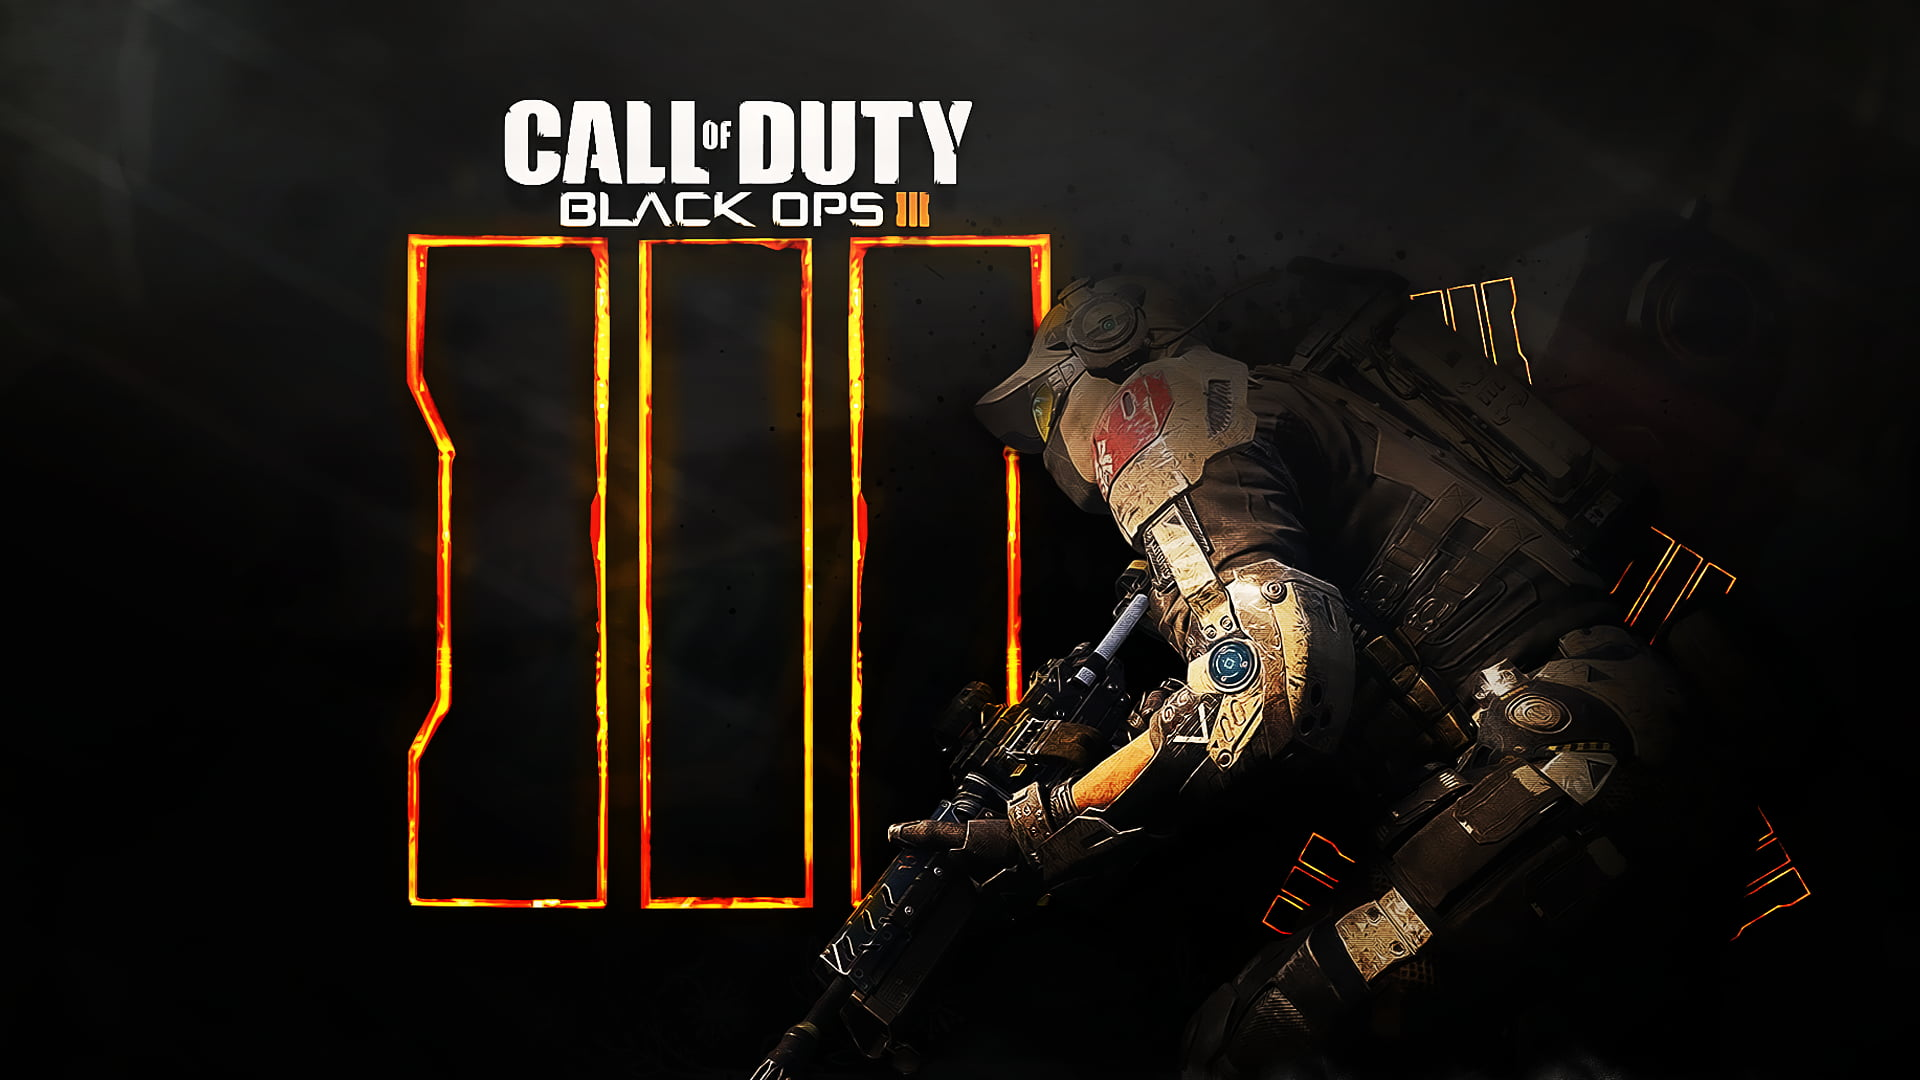 Black Ops 3 Hd Wallpaper Posted By Zoey Thompson